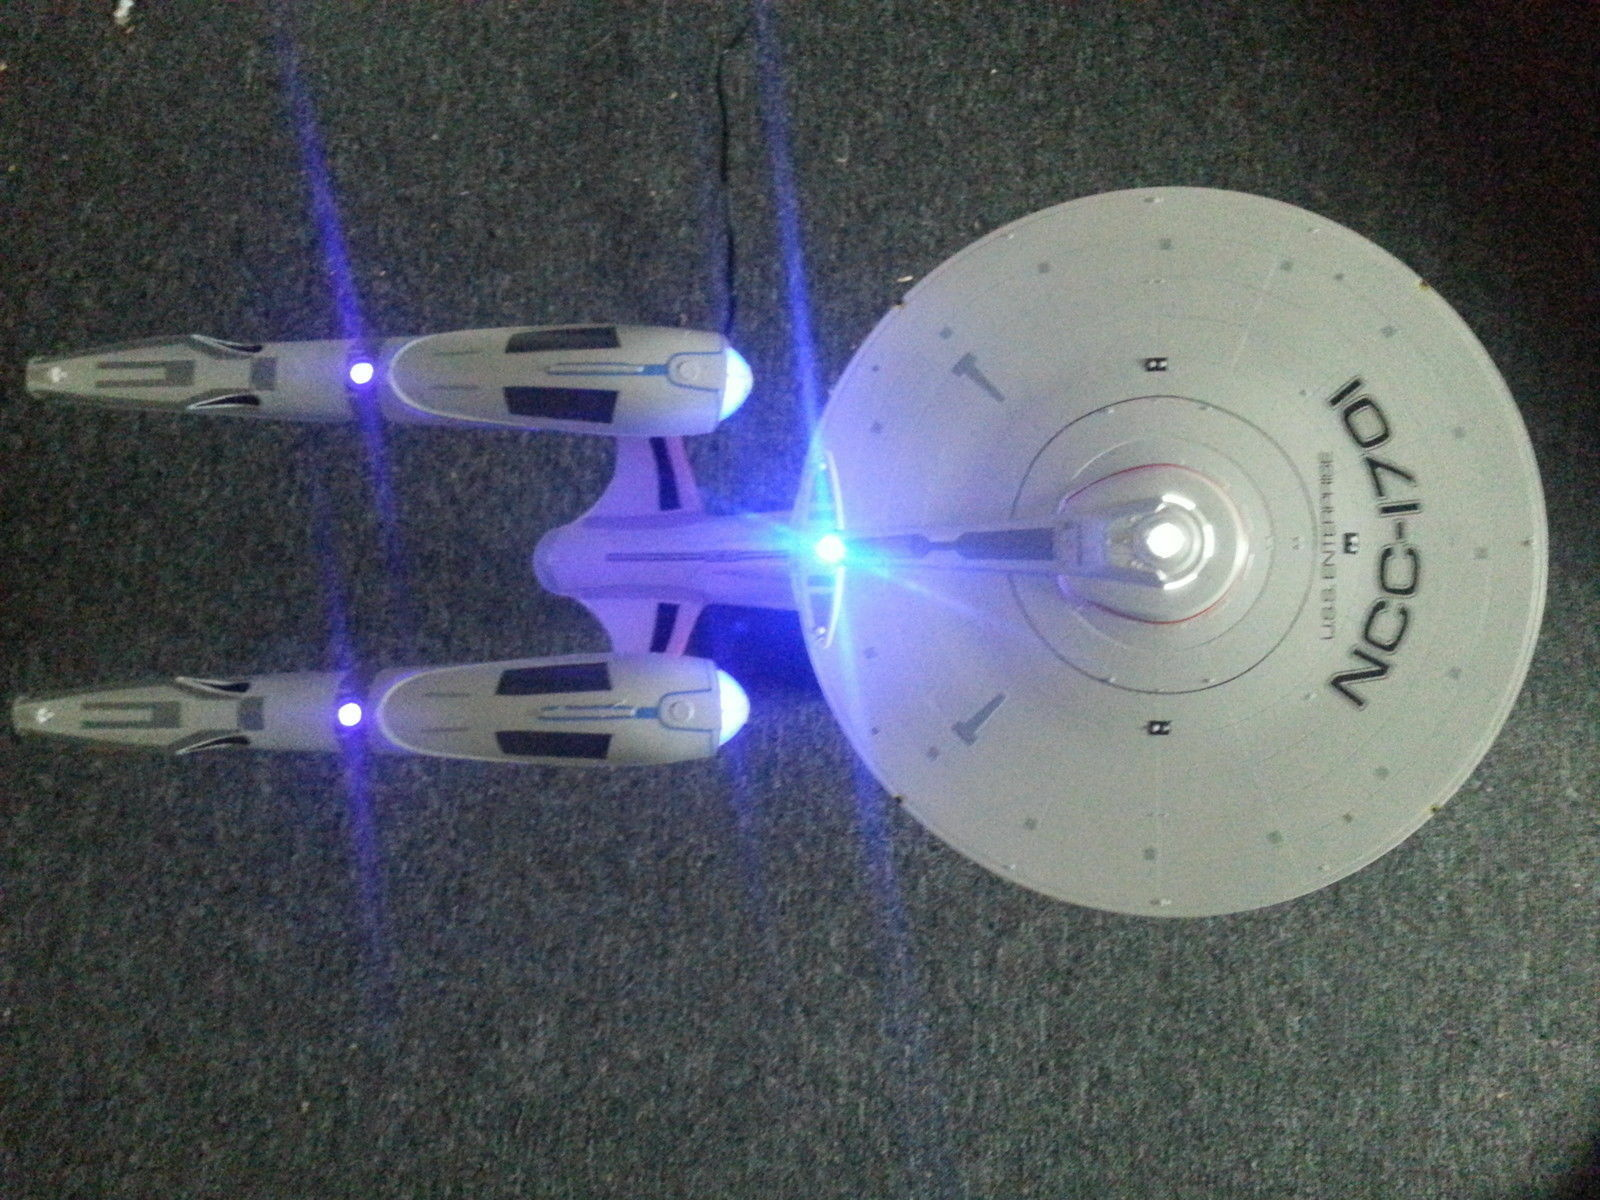 Star Trek USS Enterprise 2009 Revell model kit incl LED lighting kit